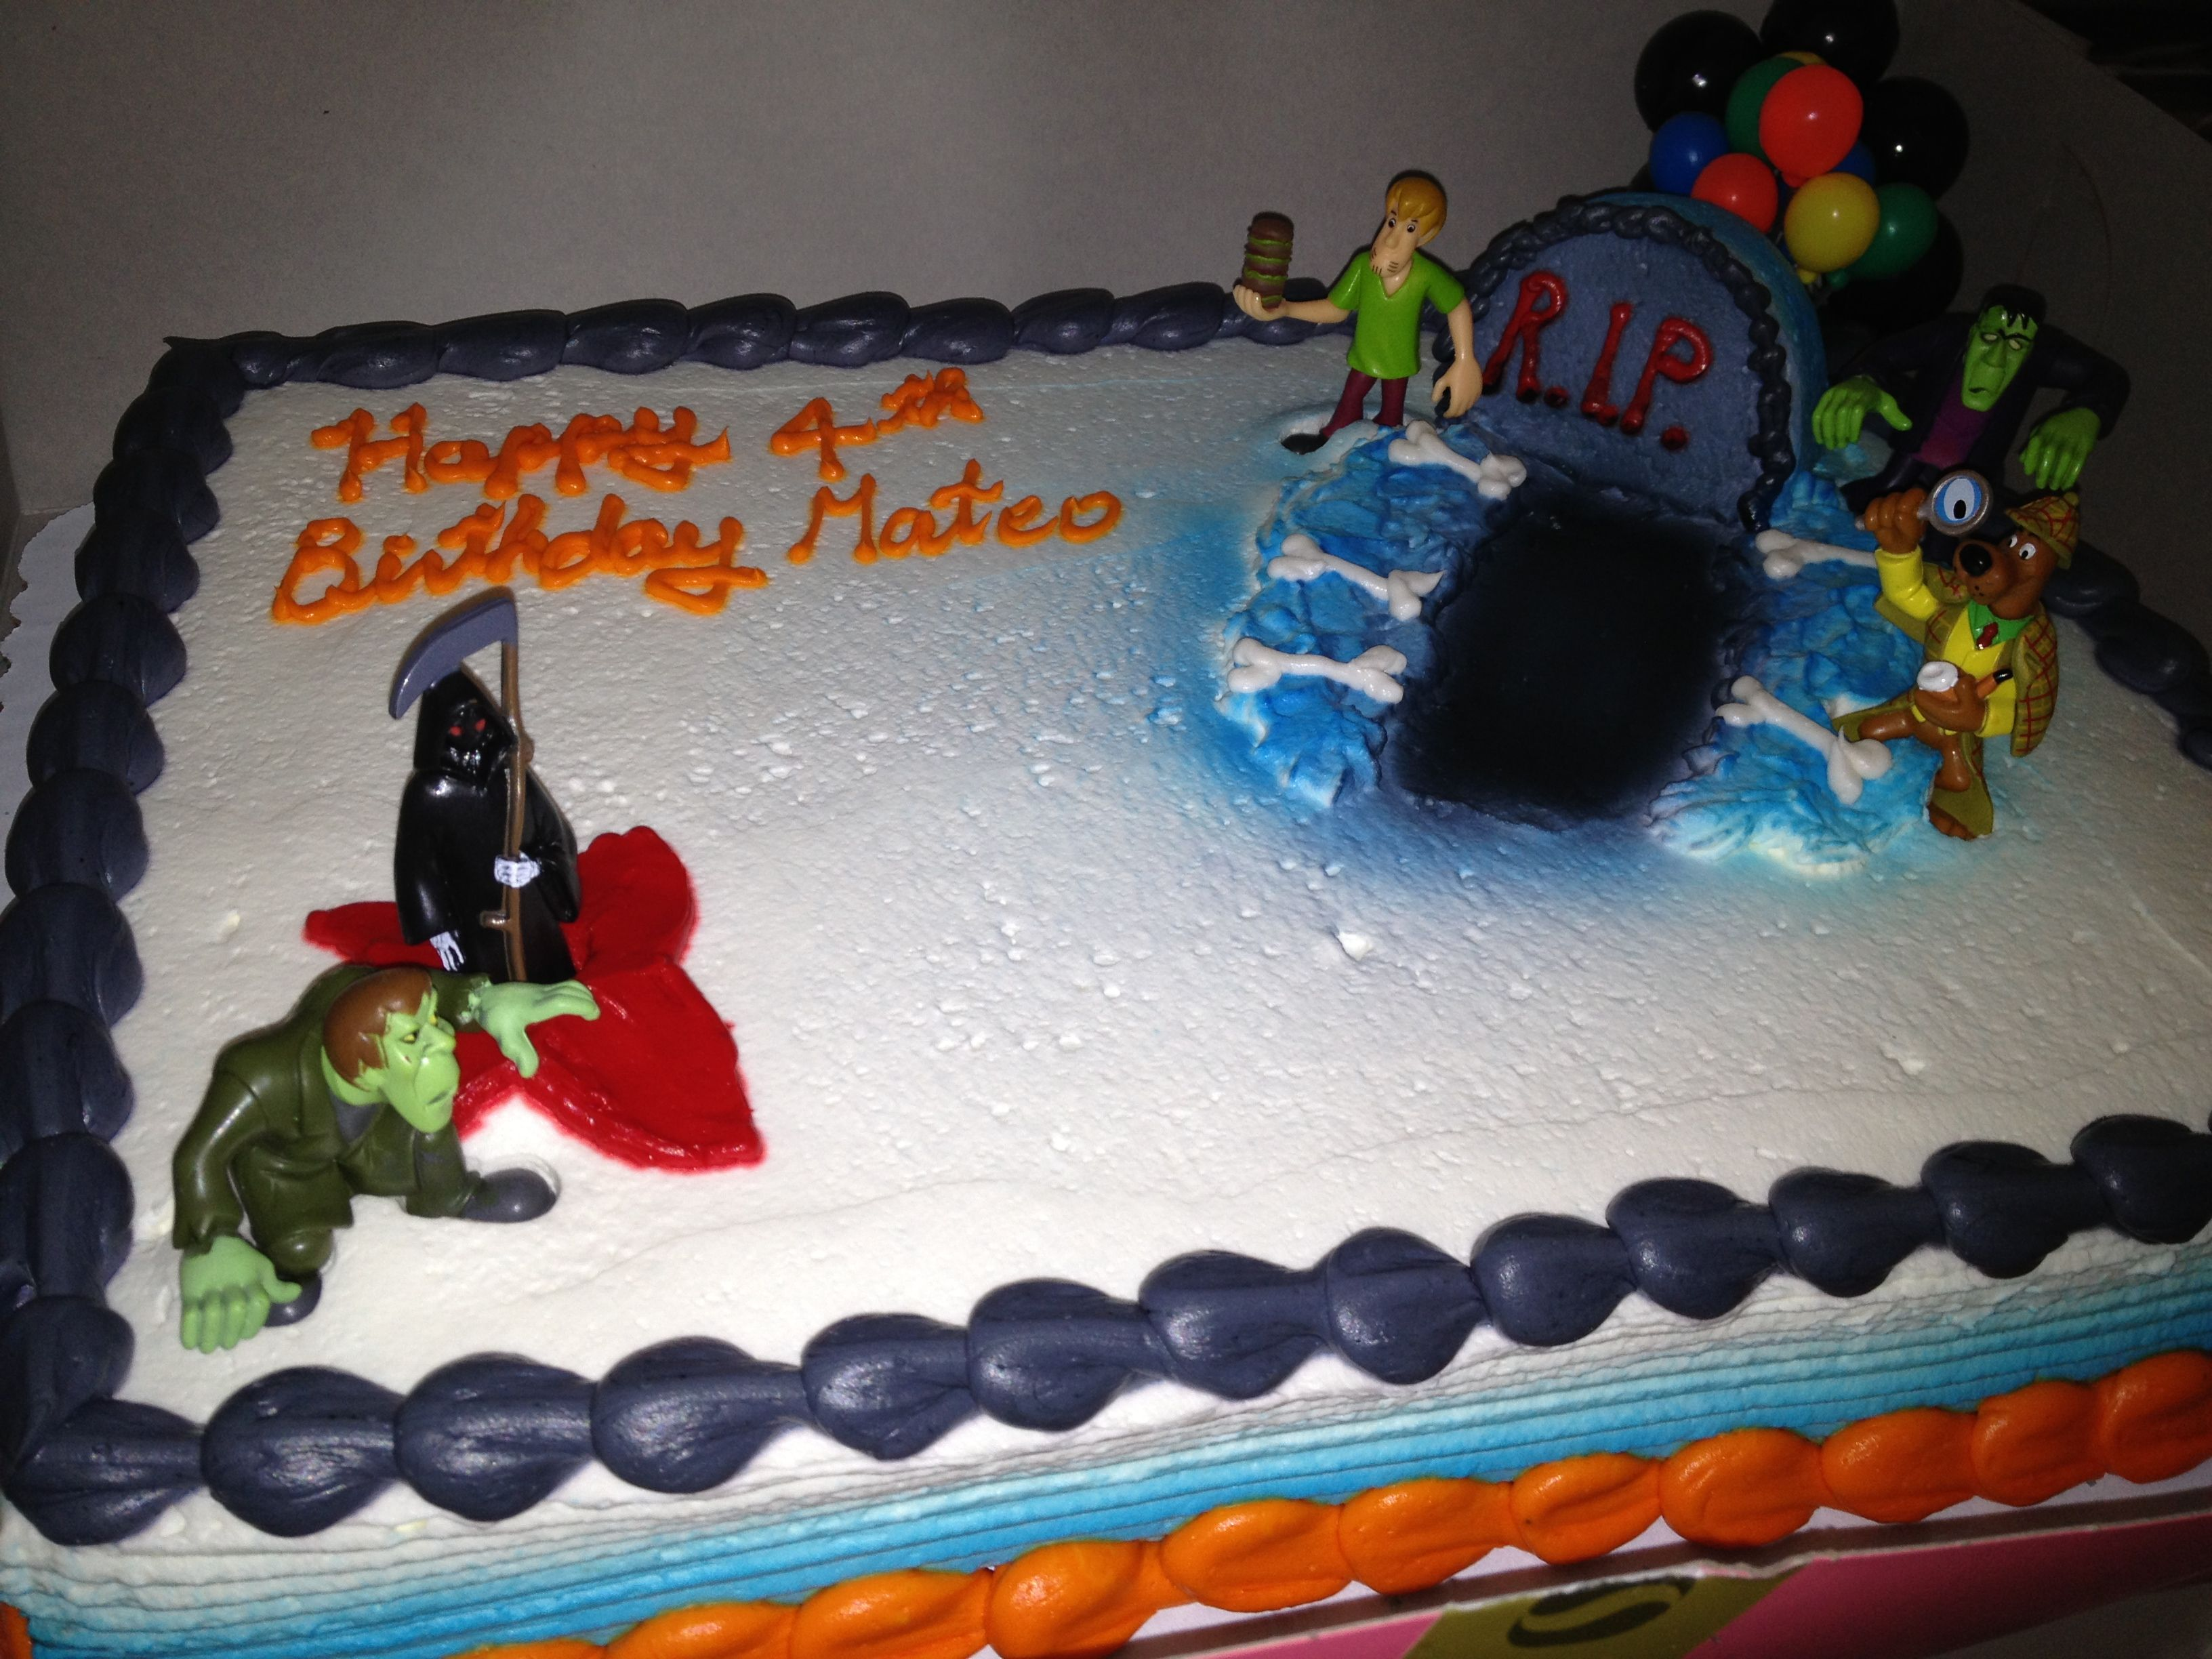 Scooby Cake my son picked the over the hill grim reaper cake at